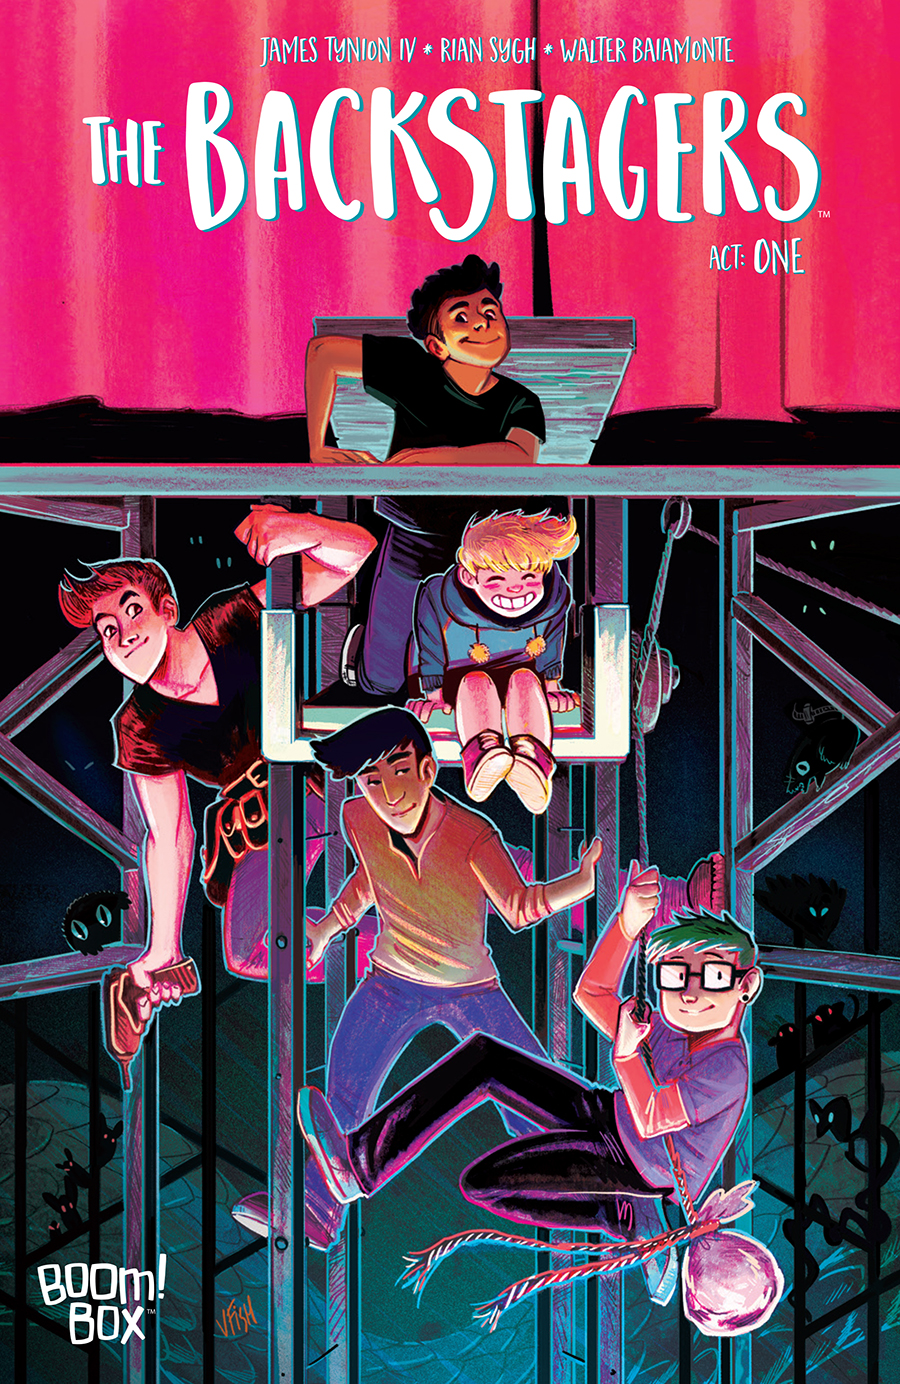 The Backstagers, Vol. 1: Rebels Without Applause by Walter Baiamonte, James Tynion IV, Rian Sygh